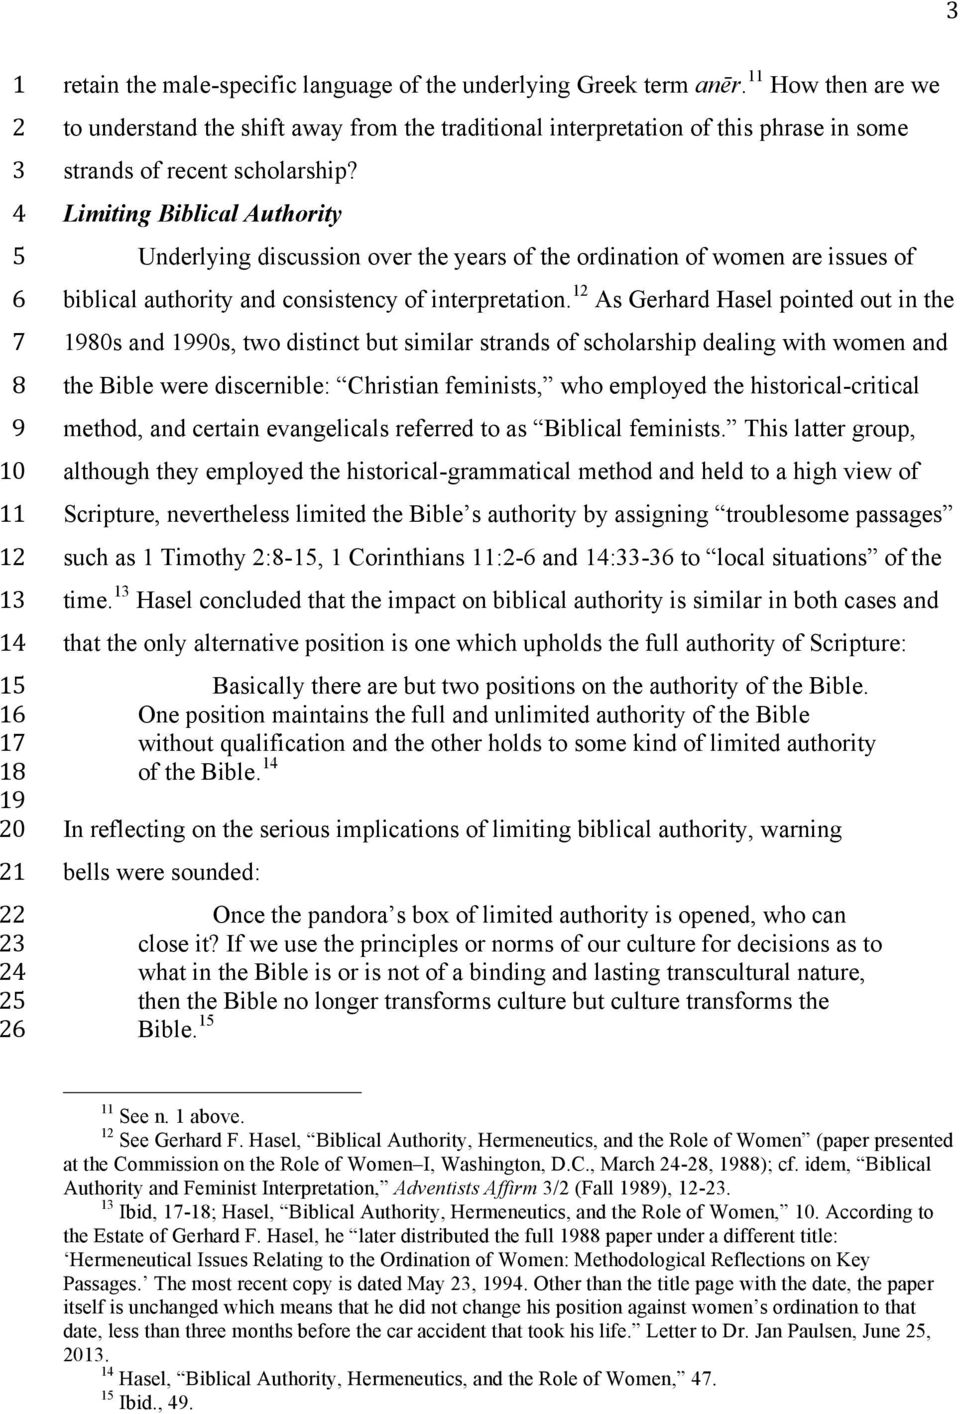 Limiting Bilical Authority Underlying discussion over the years of the ordination of women are issues of ilical authority and consistency of interpretation.